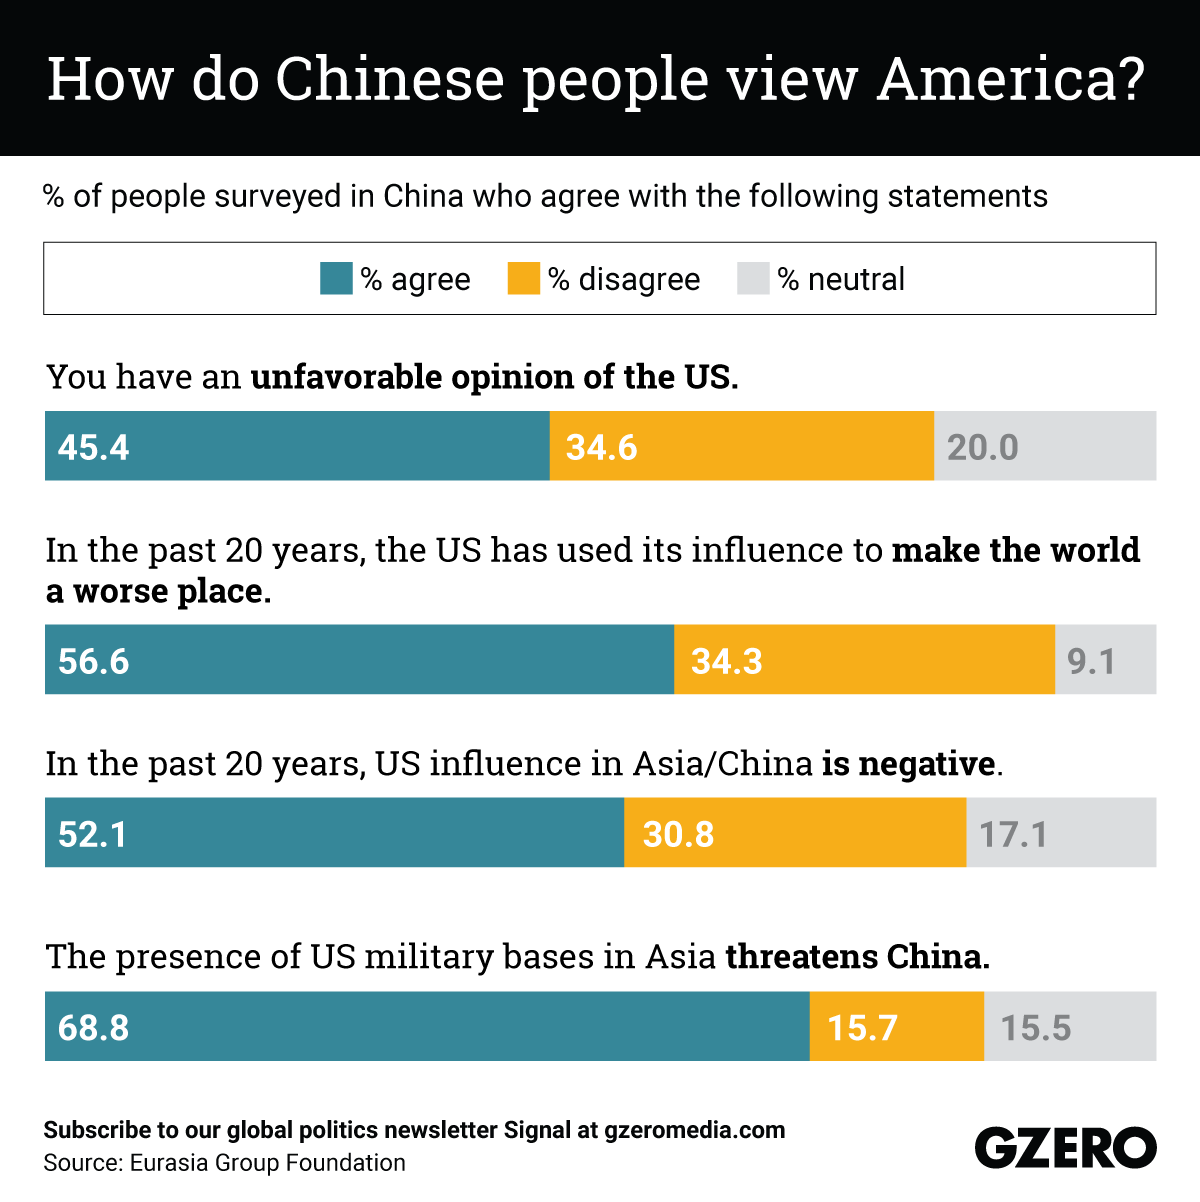 The Graphic Truth: How do Chinese people view America?